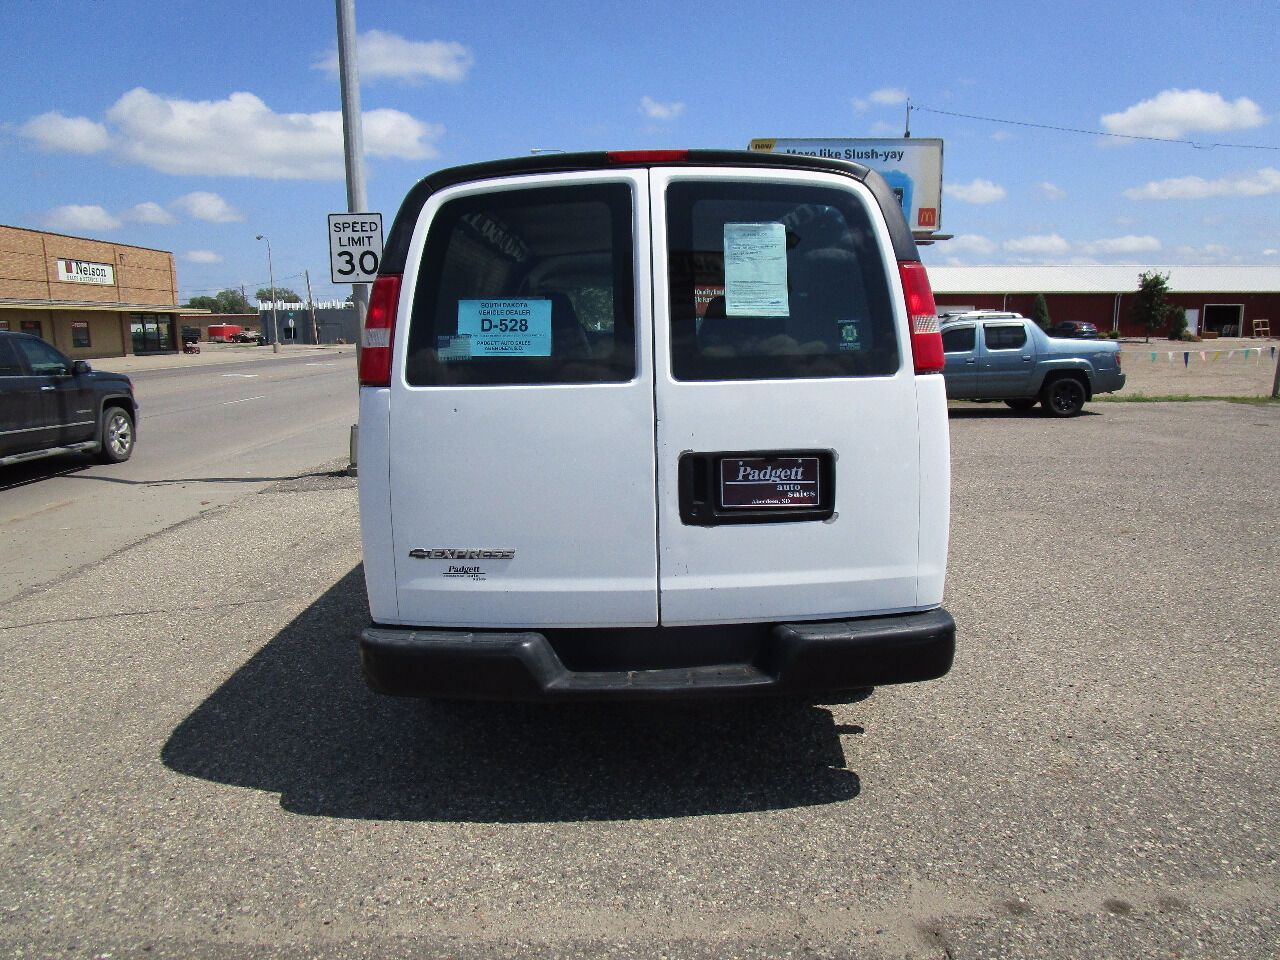 2004 Chevrolet Express Cargo 1500 | Aberdeen, SD, Summit White (White), Rear Wheel